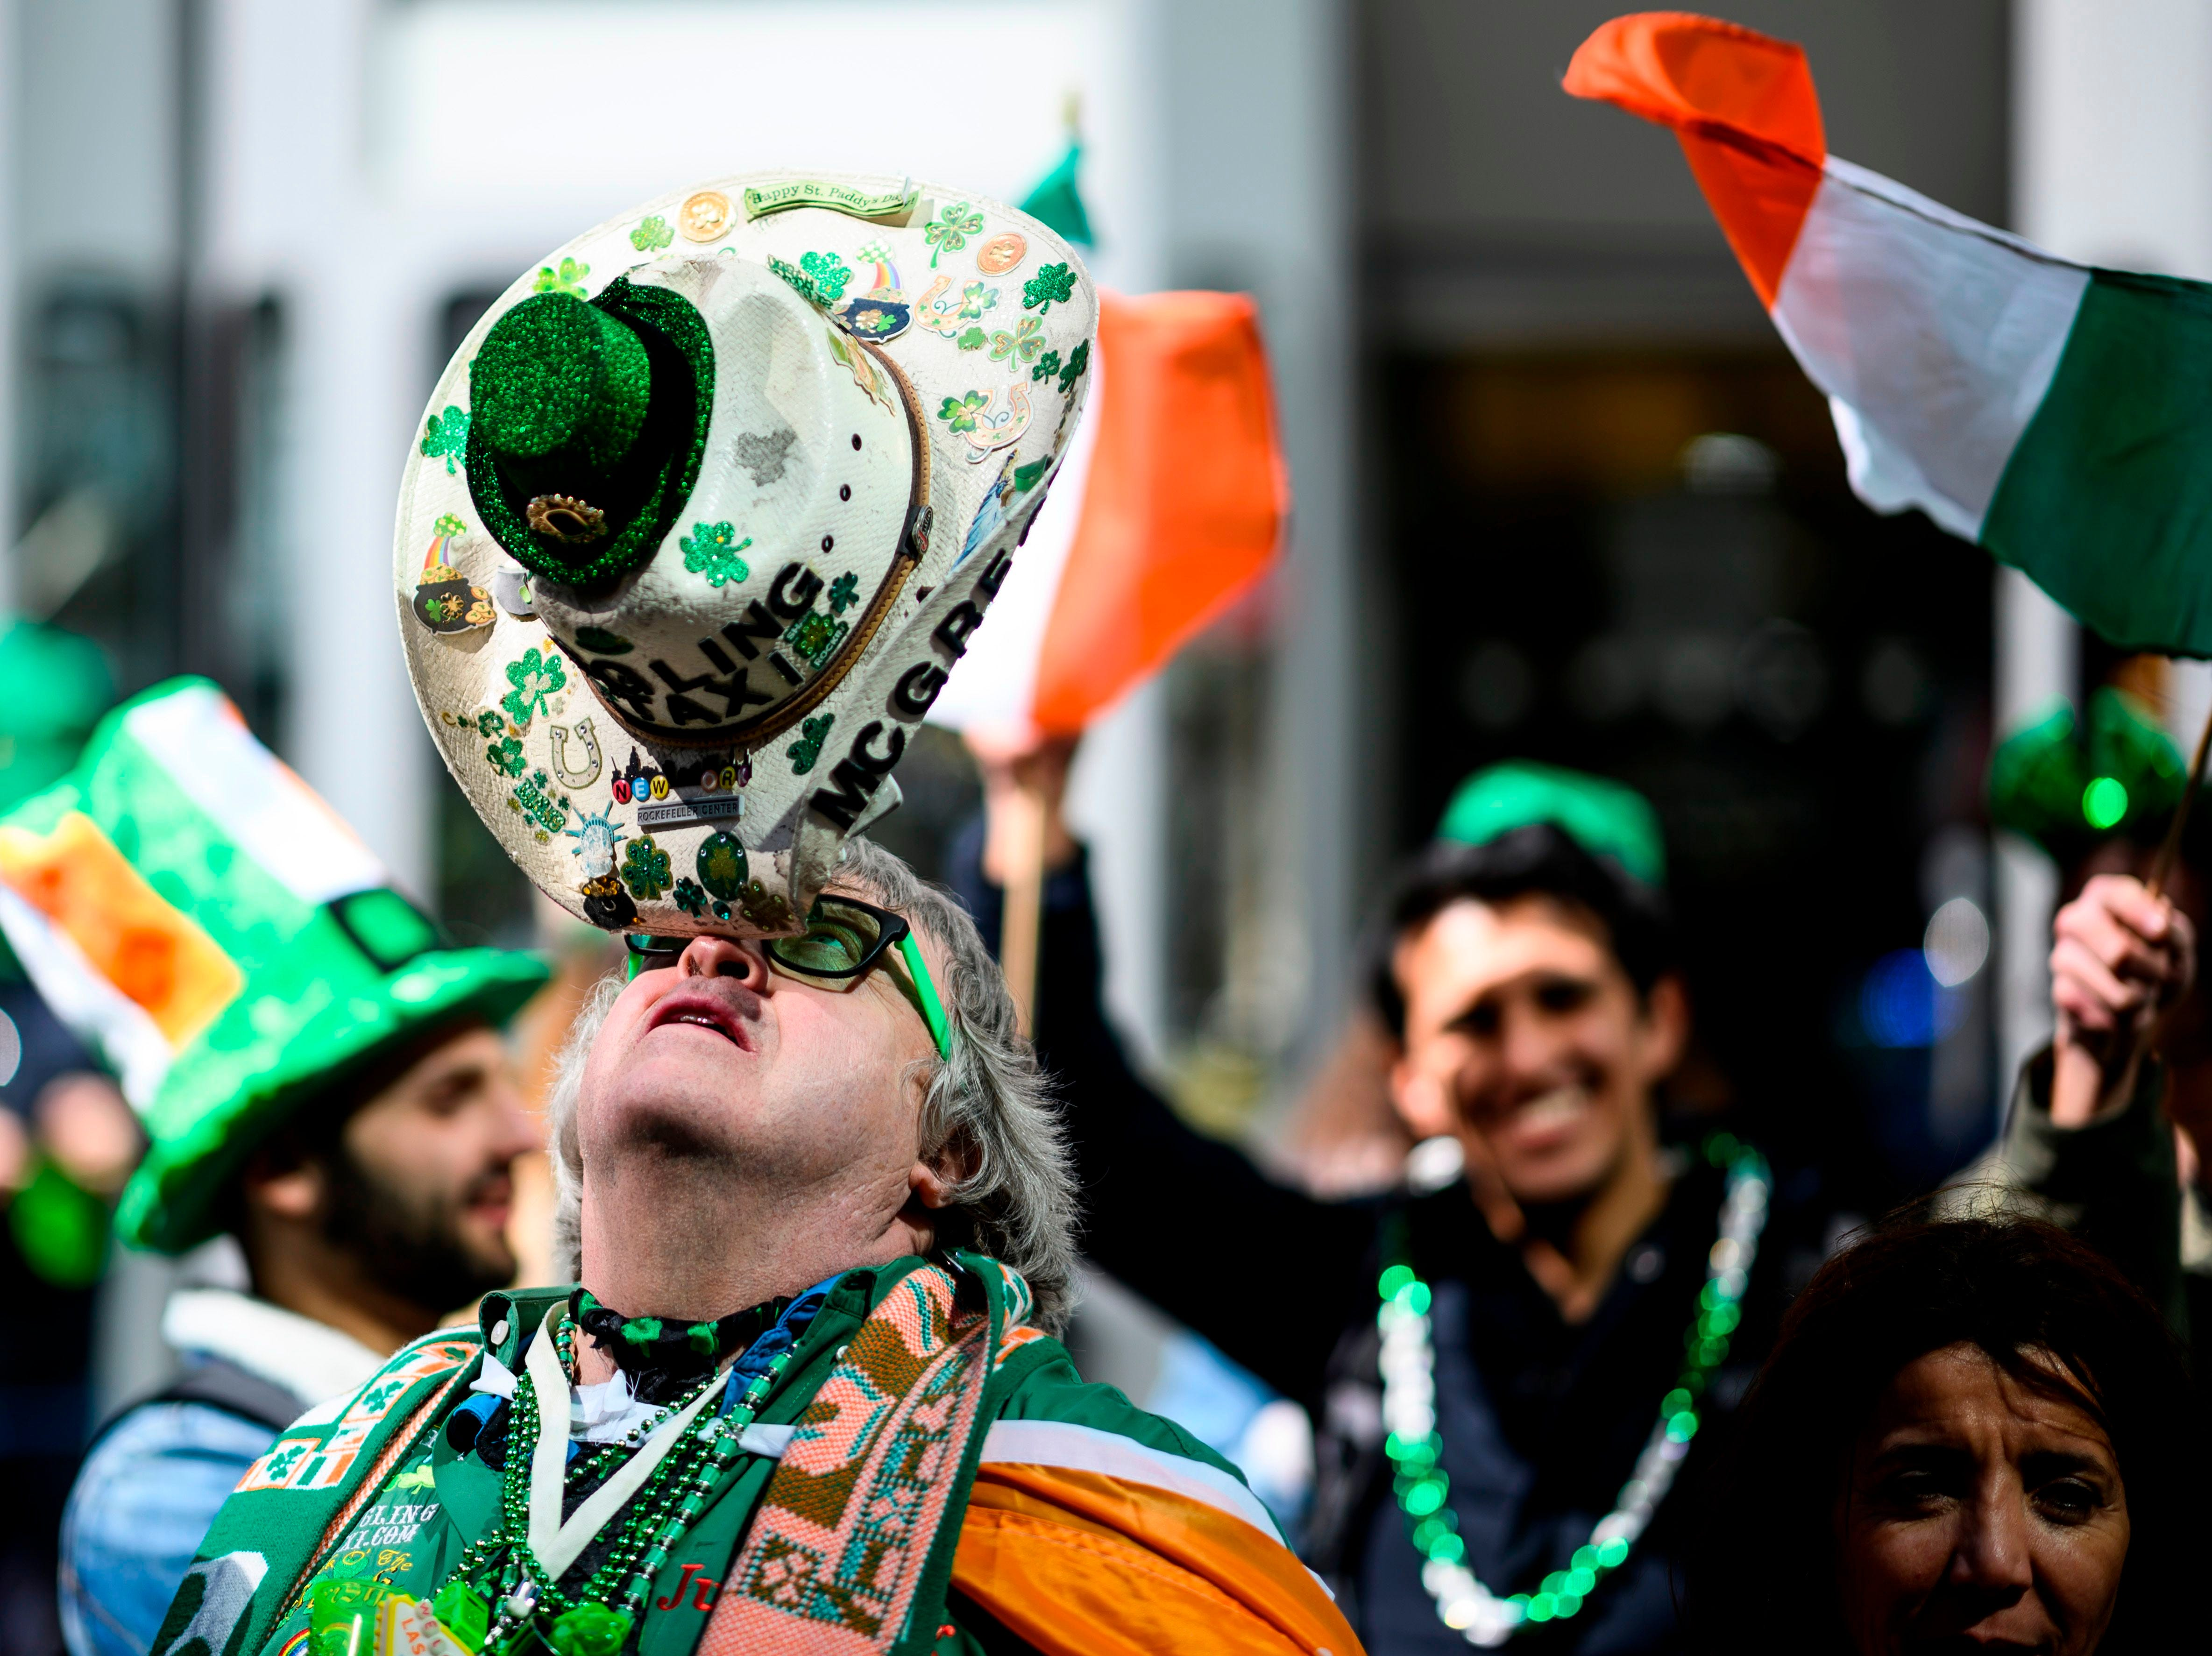 A man balances his hat during the annual New York City St. Patrick's Day Parade on March 16, 2019. The New York City St. Patrick's Day parade, dating back to 1762, is the world's largest St. Patrick's Day celebration.